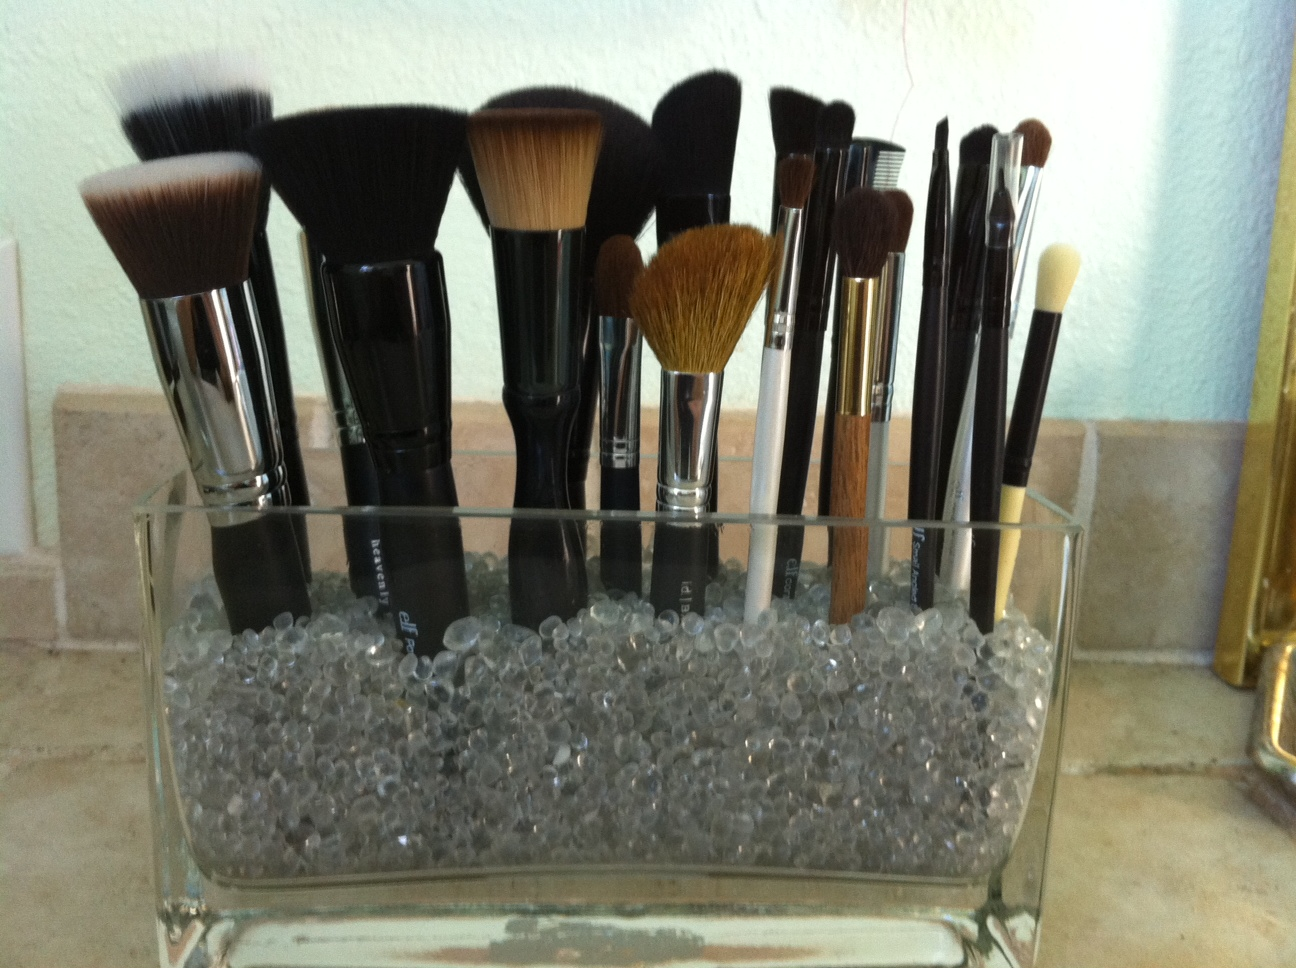 DENISE JOYCE: DIY Wednesday: Make Your Own Brush Holder!